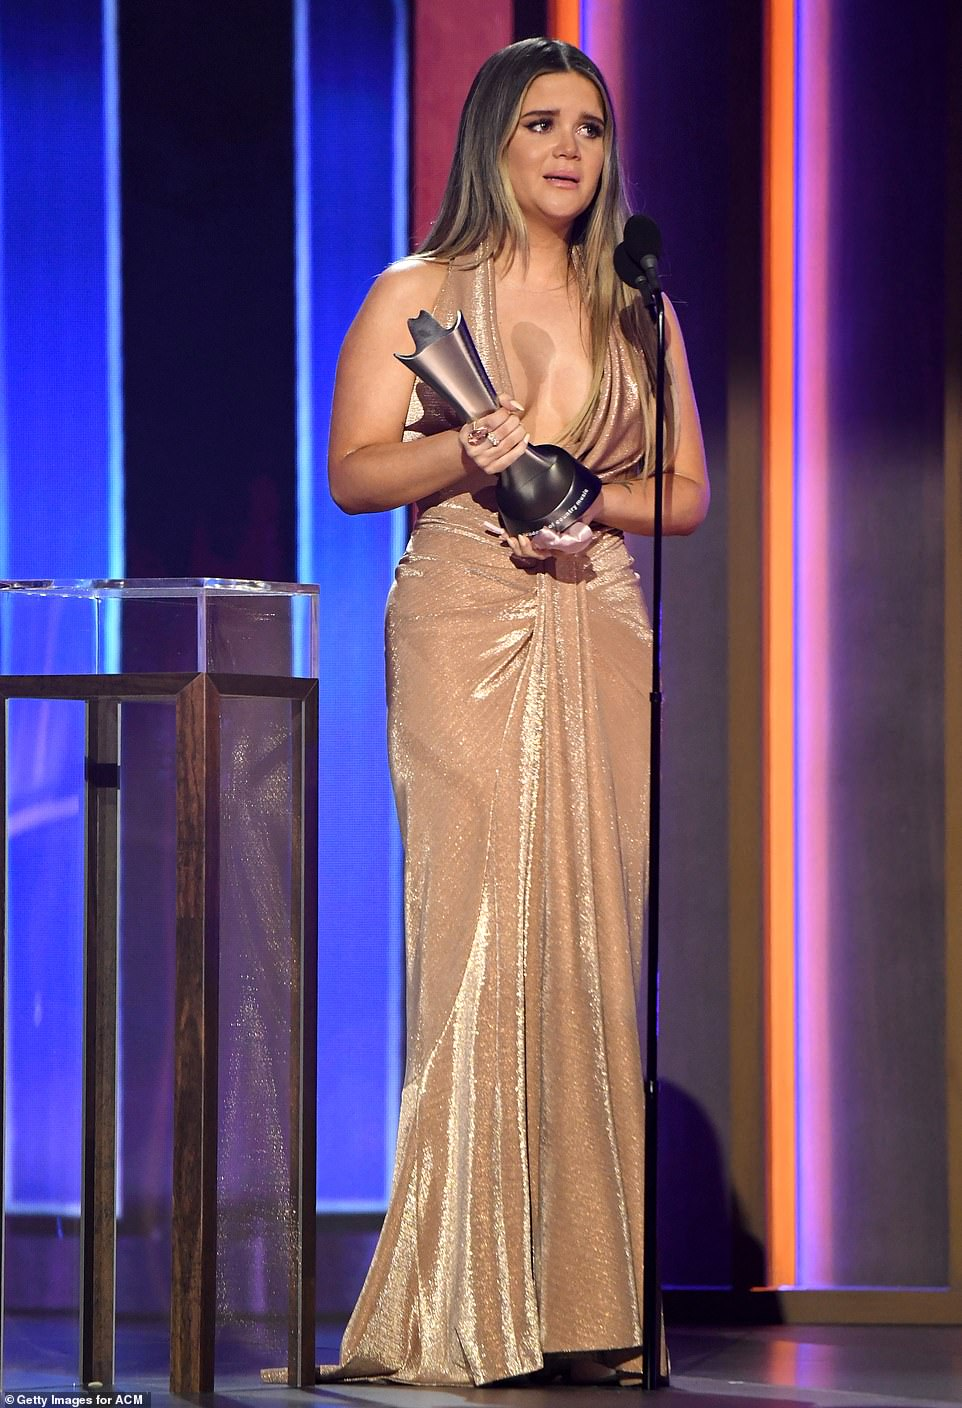 Honored: Maren Morris was one of the early winners at the ceremony for Song of the Year for her track The Bones at the 56 Academy of Country Music Awards on Sunday in Nashville